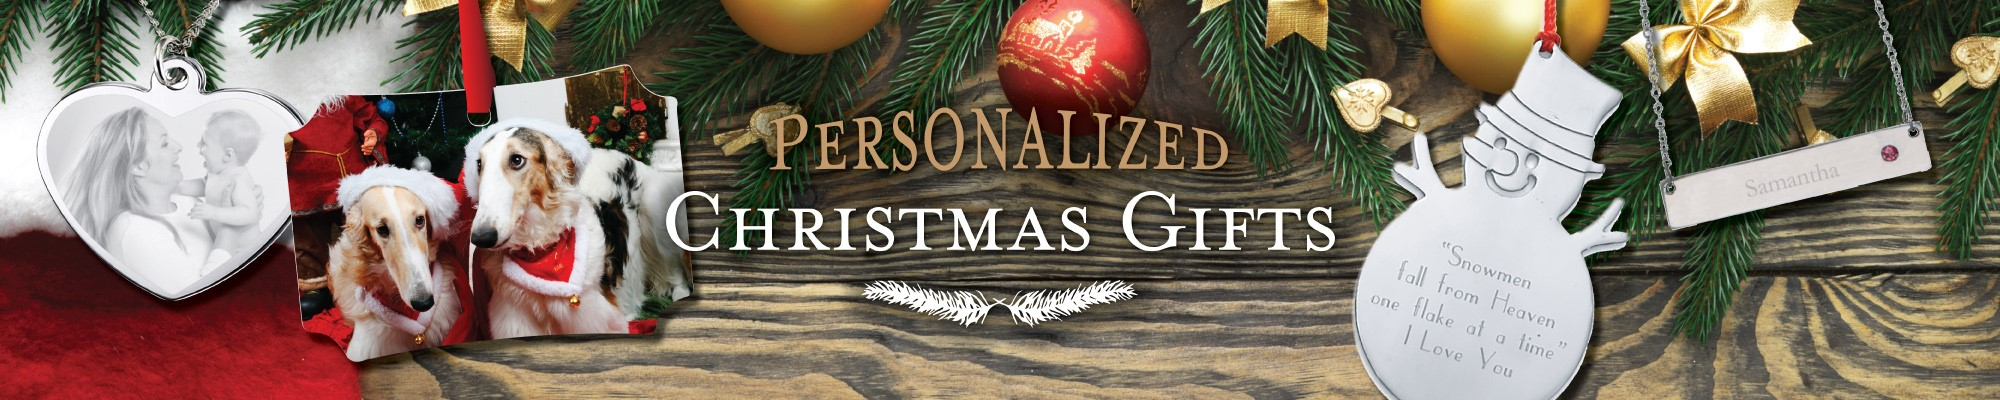 Personalized Christmas Gifts